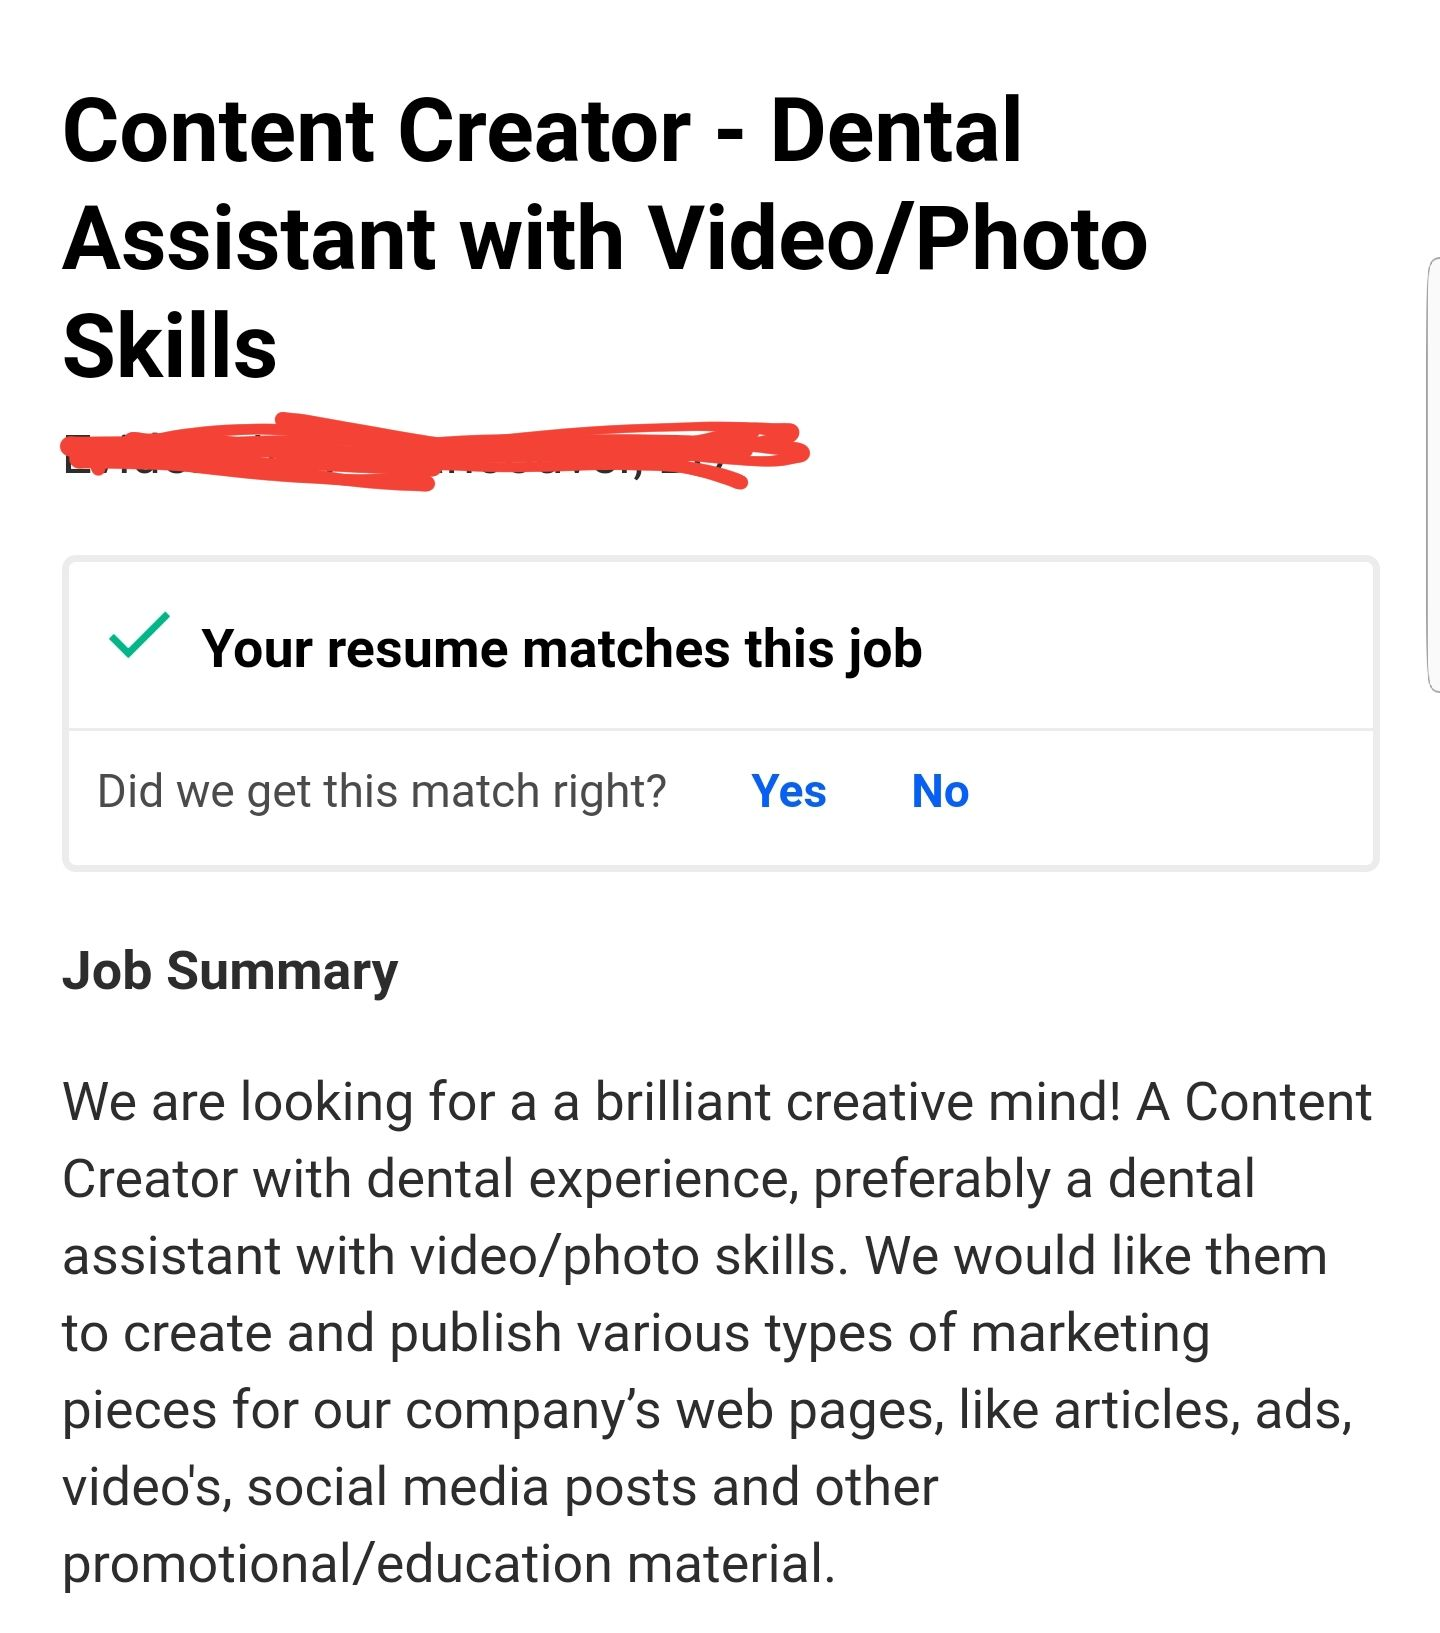 your resume matches this job videography college application examples for high school Resume Your Resume Matches This Job